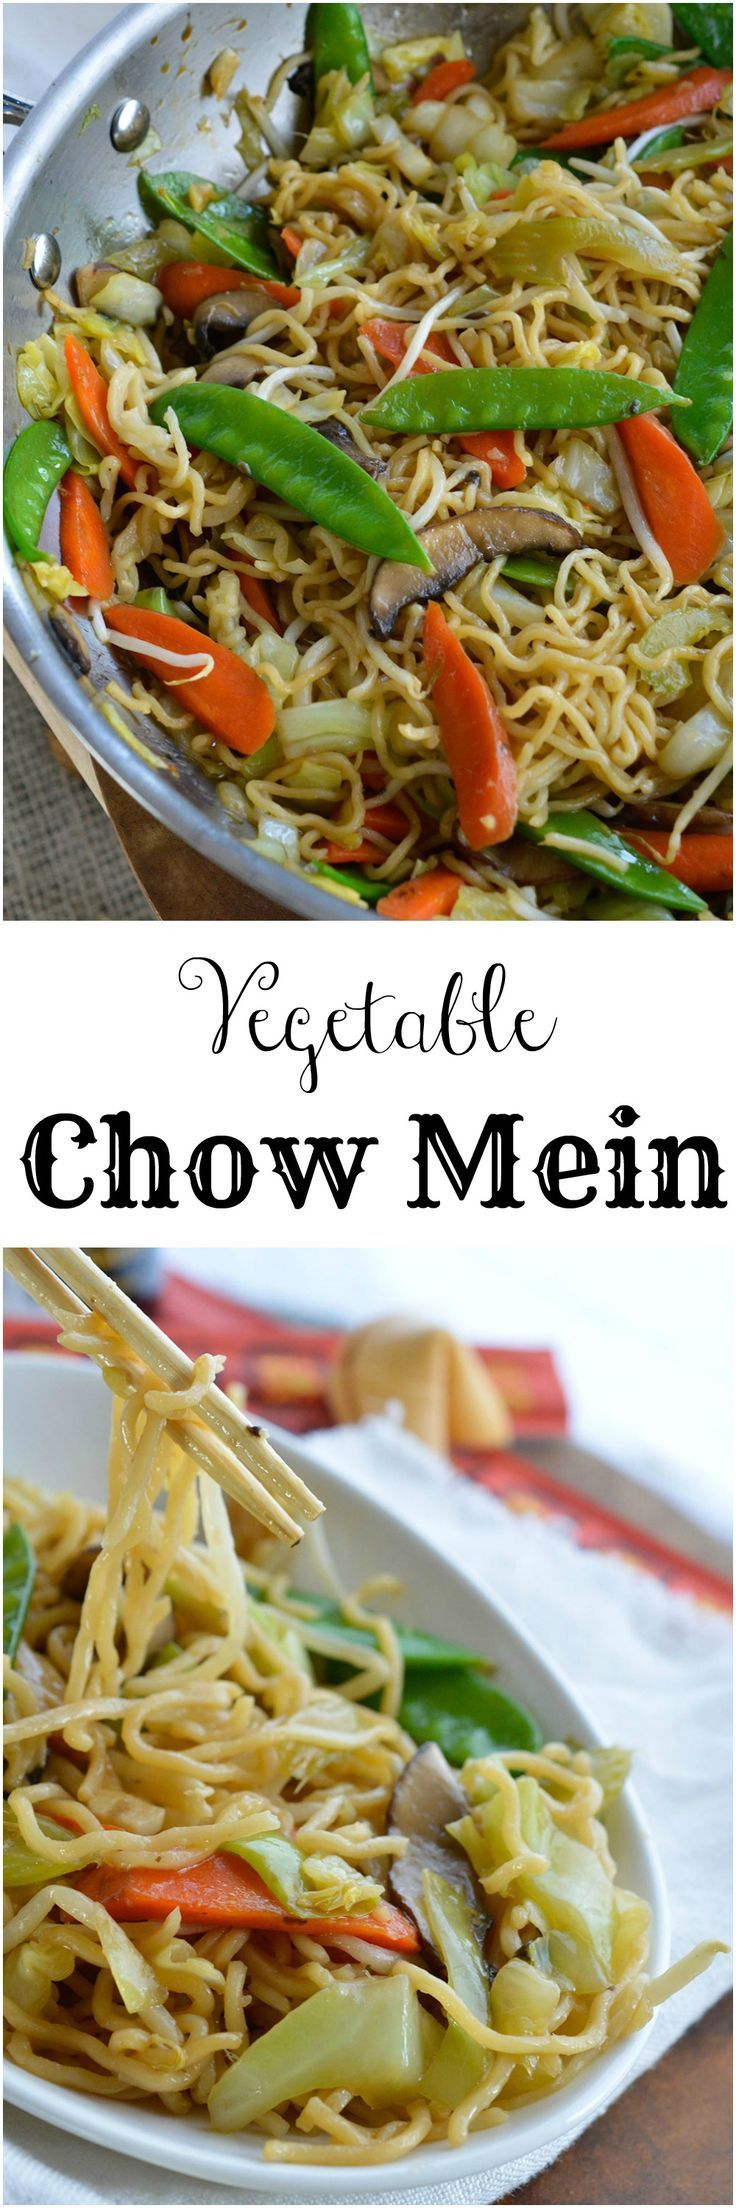 This Easy Chow Mein Recipe is how to make chow mein noodles at home. With this homemade take out you can enjoy vegetable stir fry for dinner without leaving your house! Chinese food straight from your kitchen! #OXOCookware #spon